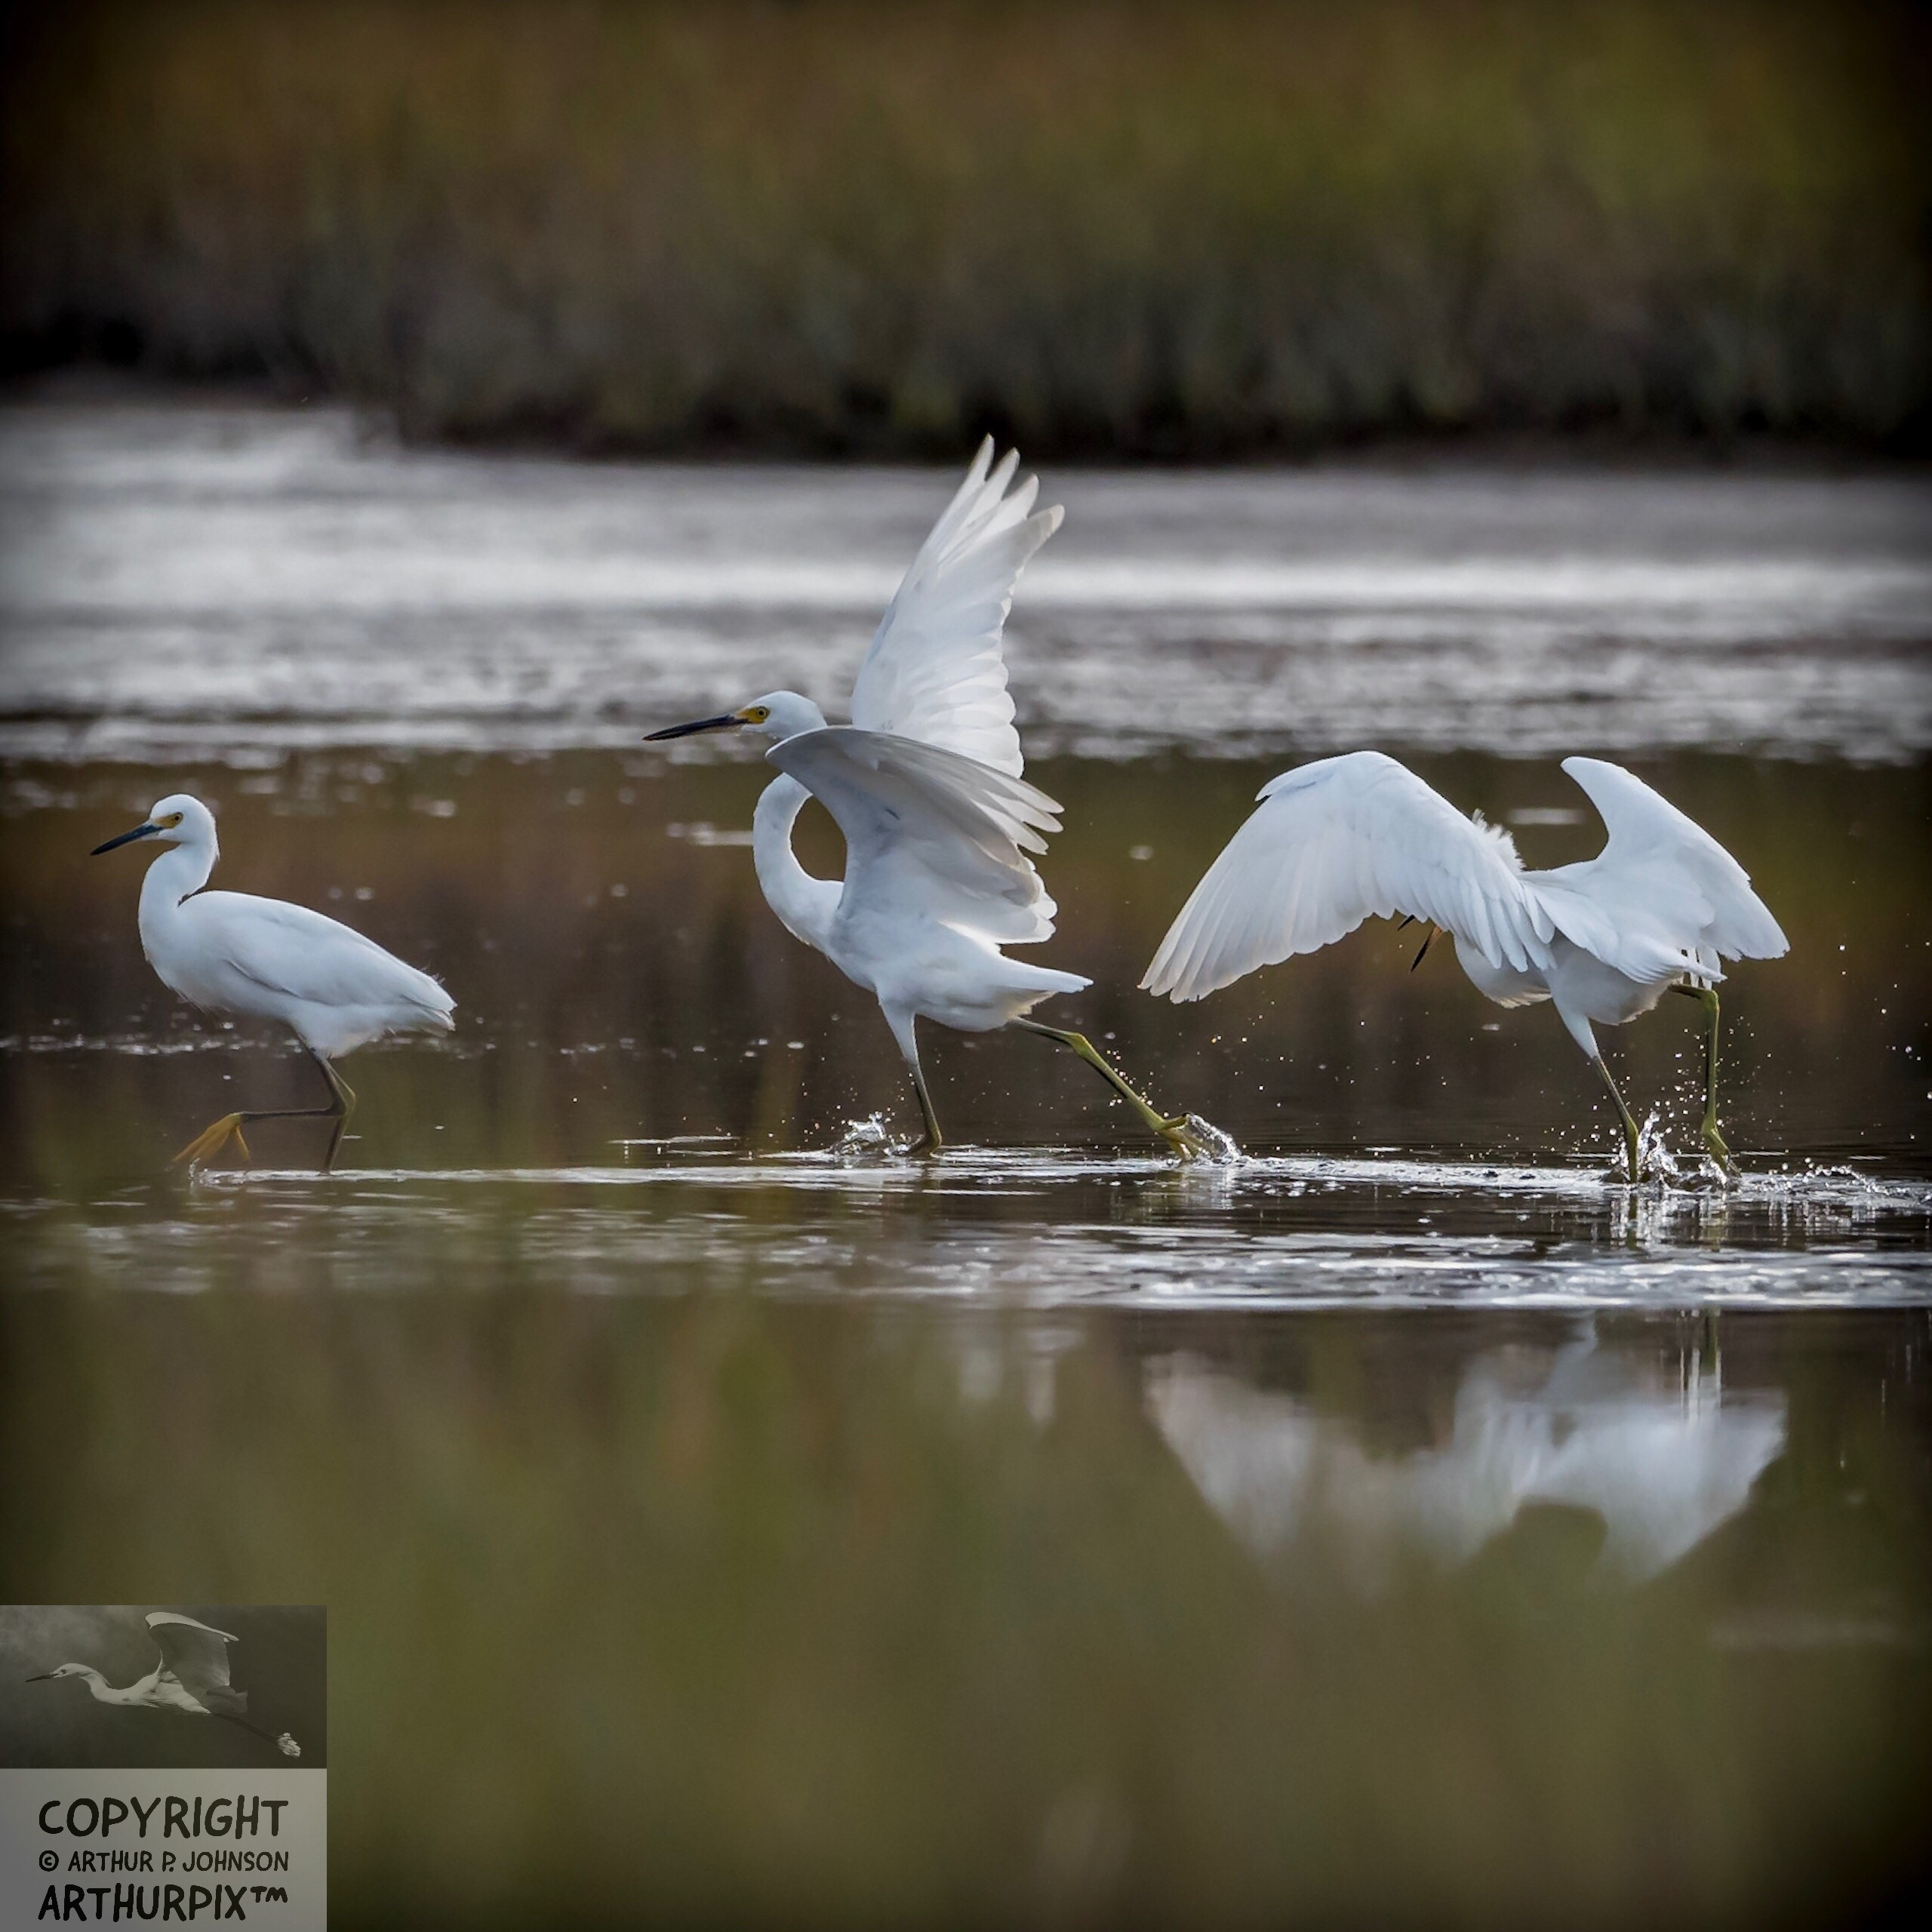 Edgar flaps his wings to gain speed, a maneuver I've often seen in Juvenile heron and mature Snowy Egrets.